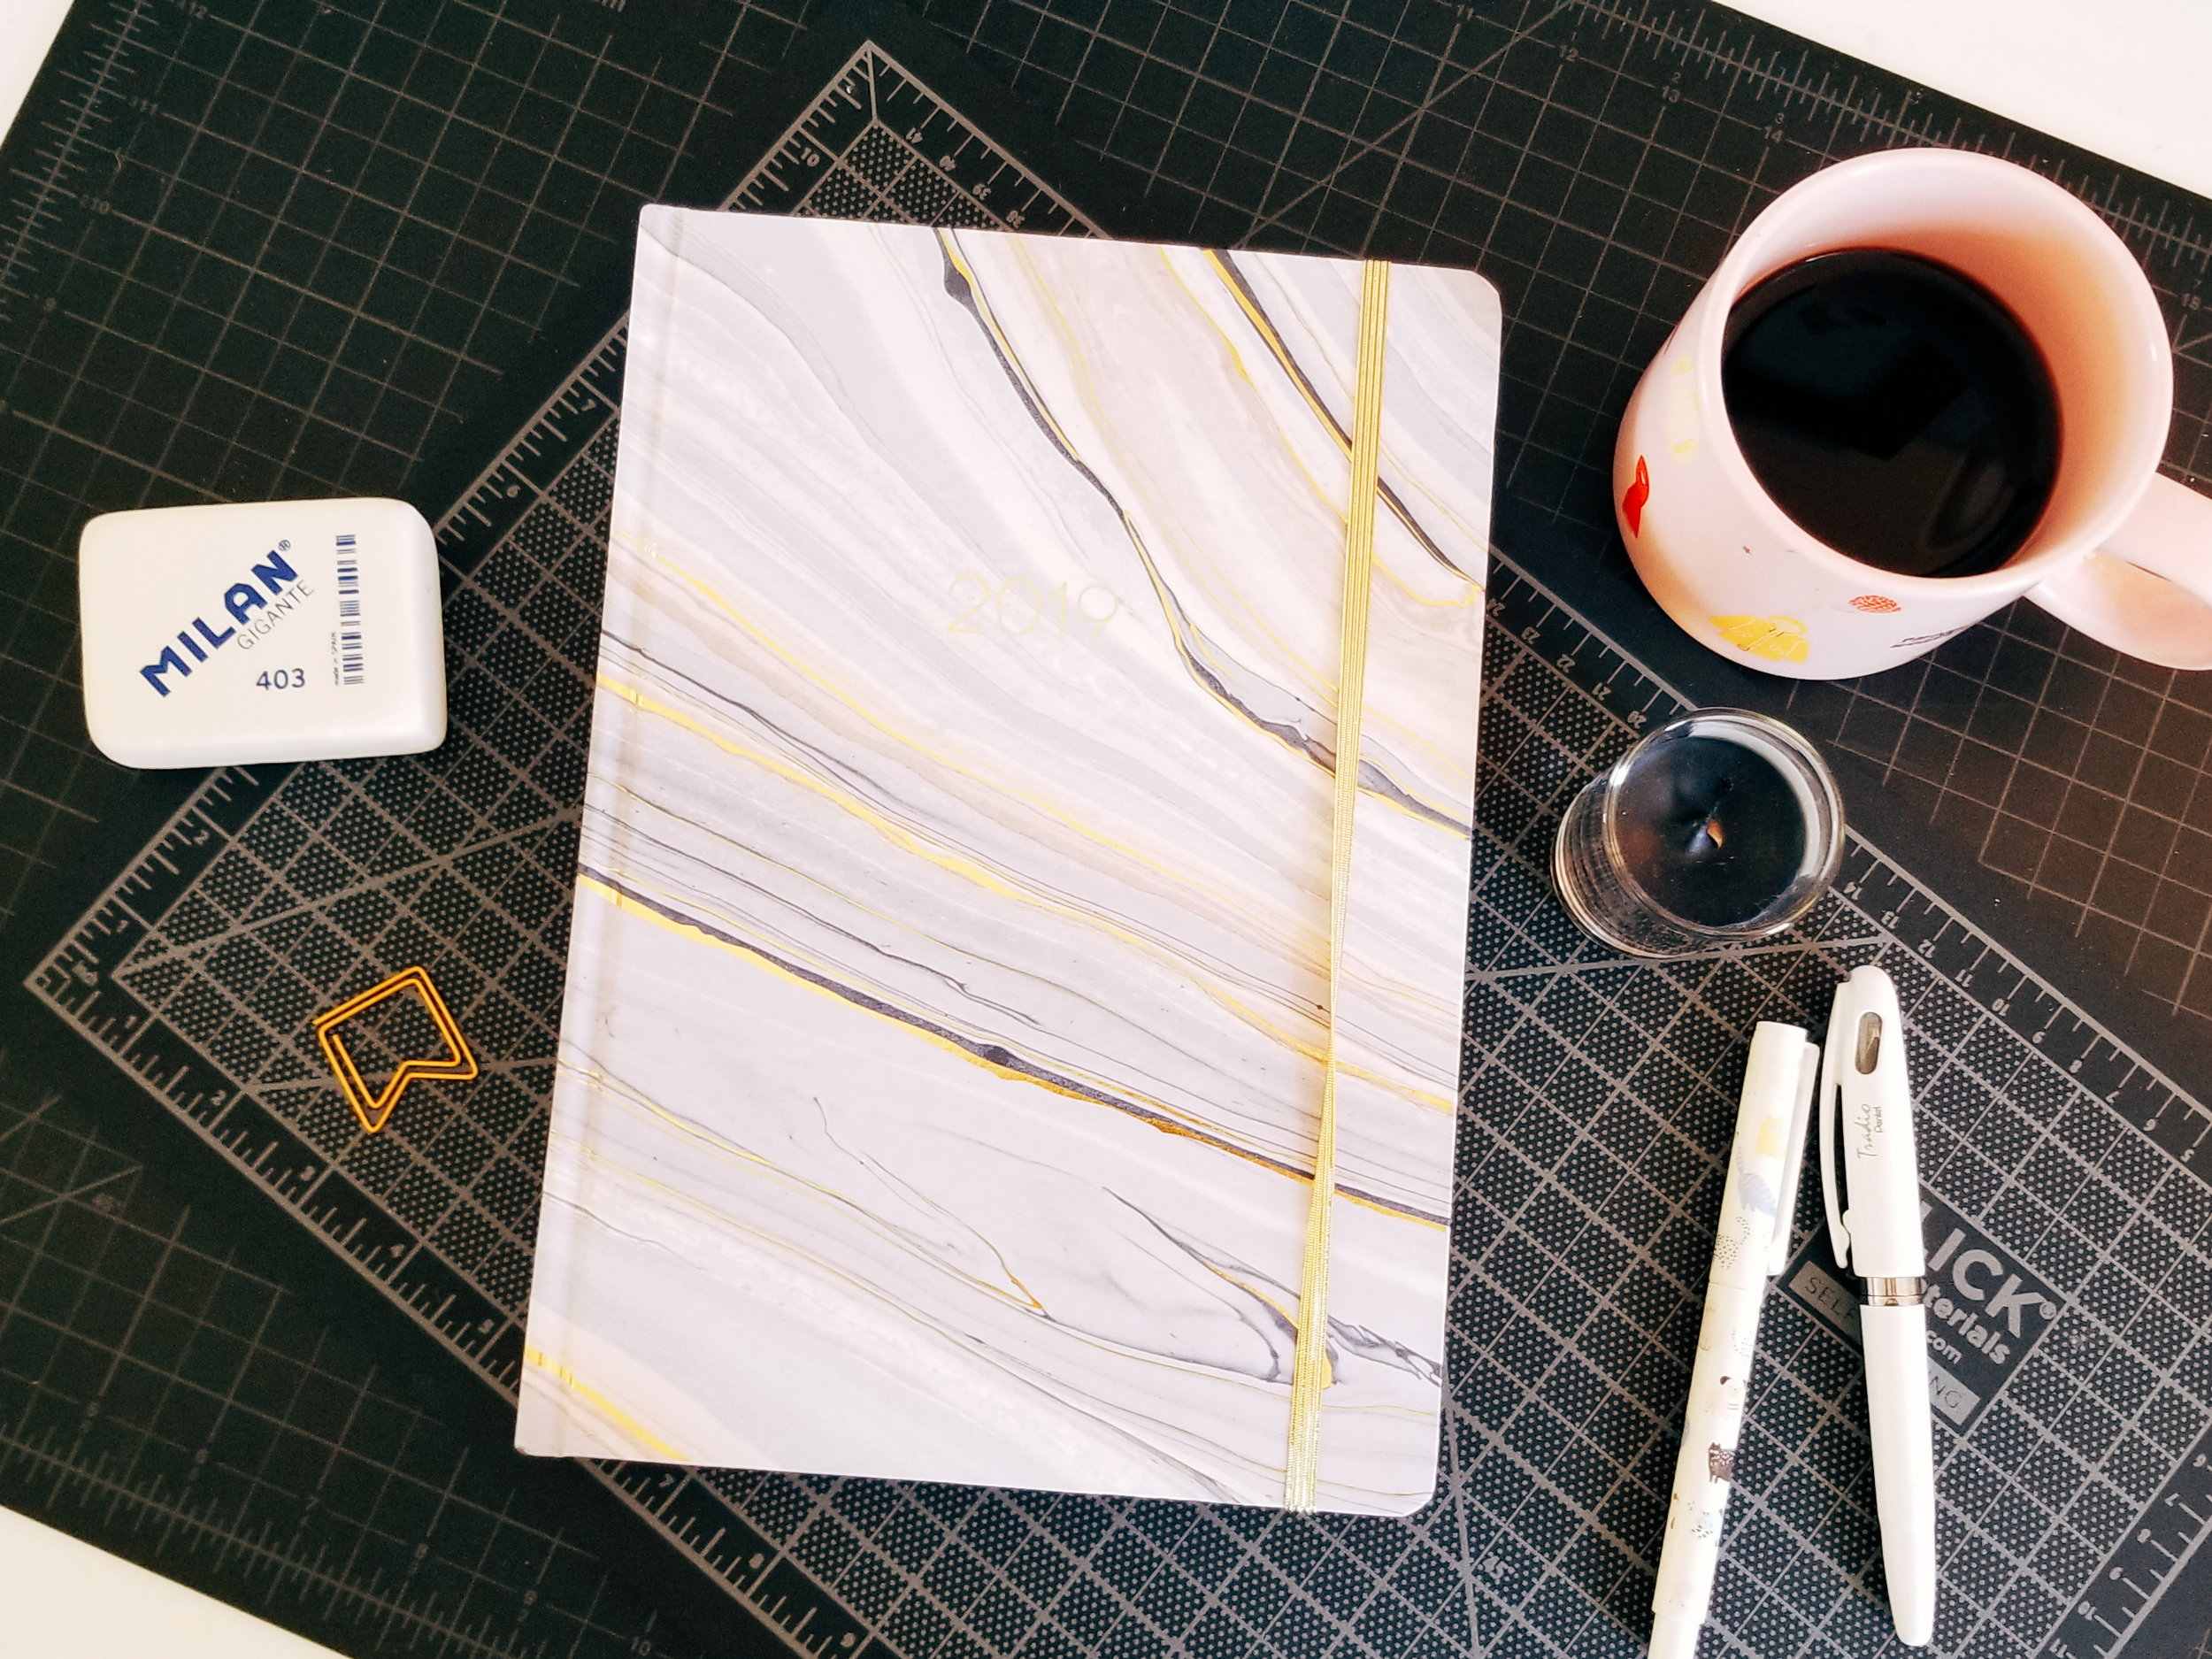 Morning Pages Journal - A desk-sized planner in A4 size that I use as a daily record and to improve my a.m. writing practice.